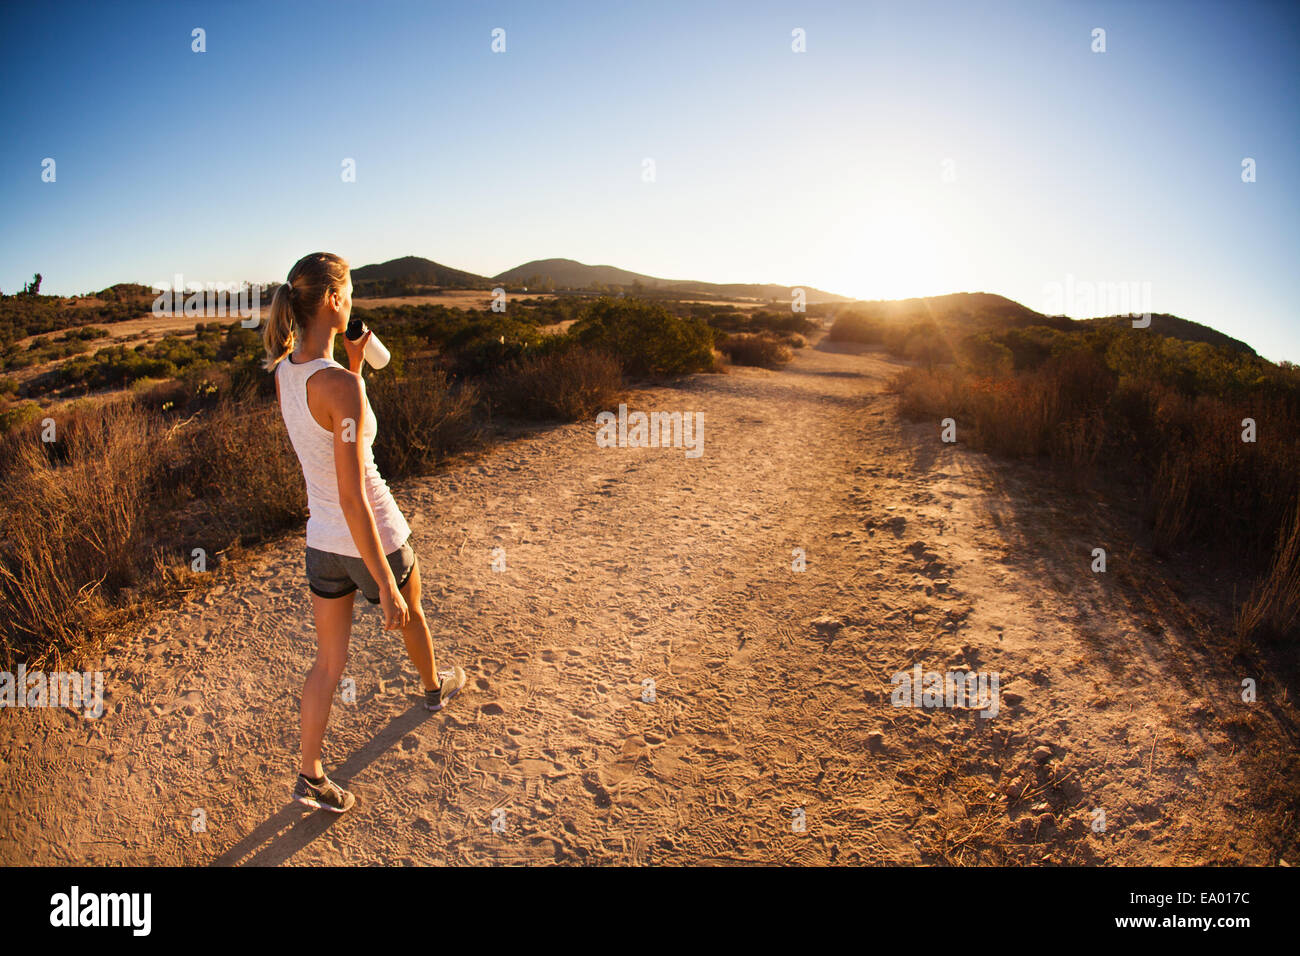 Young female jogger on path, drinking, Poway, CA, USA - Stock Image